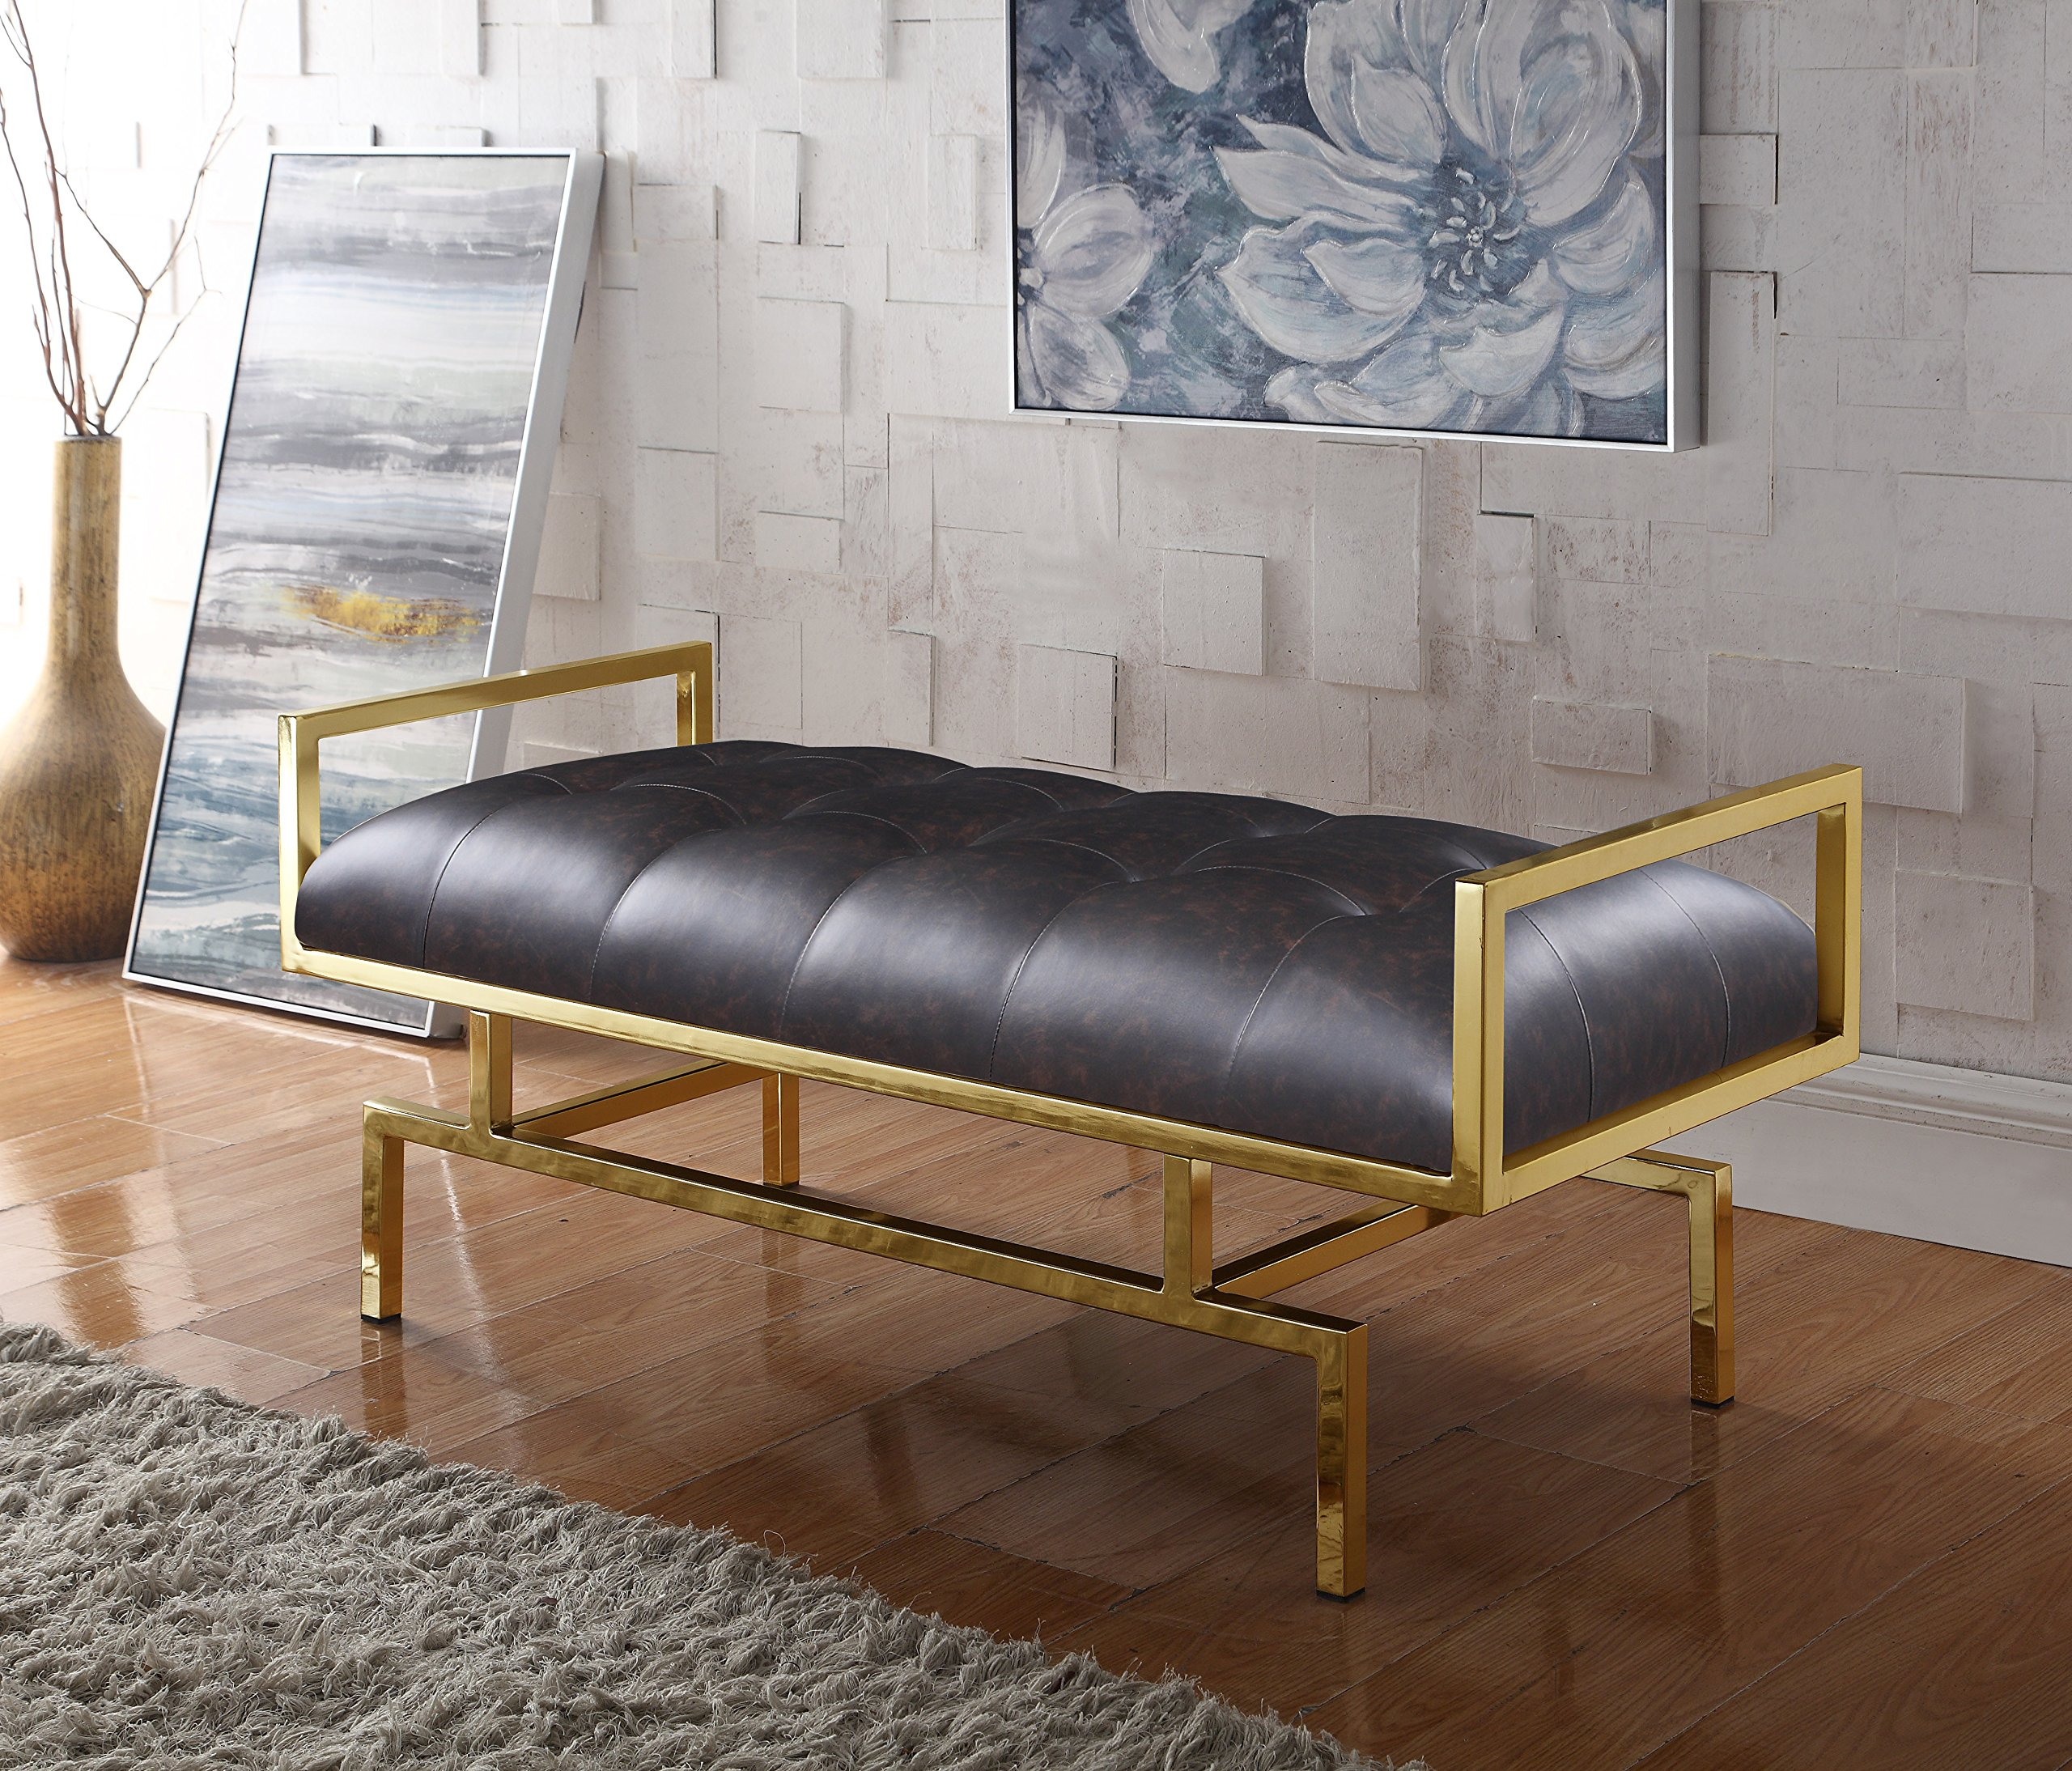 Iconic Home Bruno PU Leather Modern Contemporary Tufted Seating Goldtone Metal Leg Bench, Brown